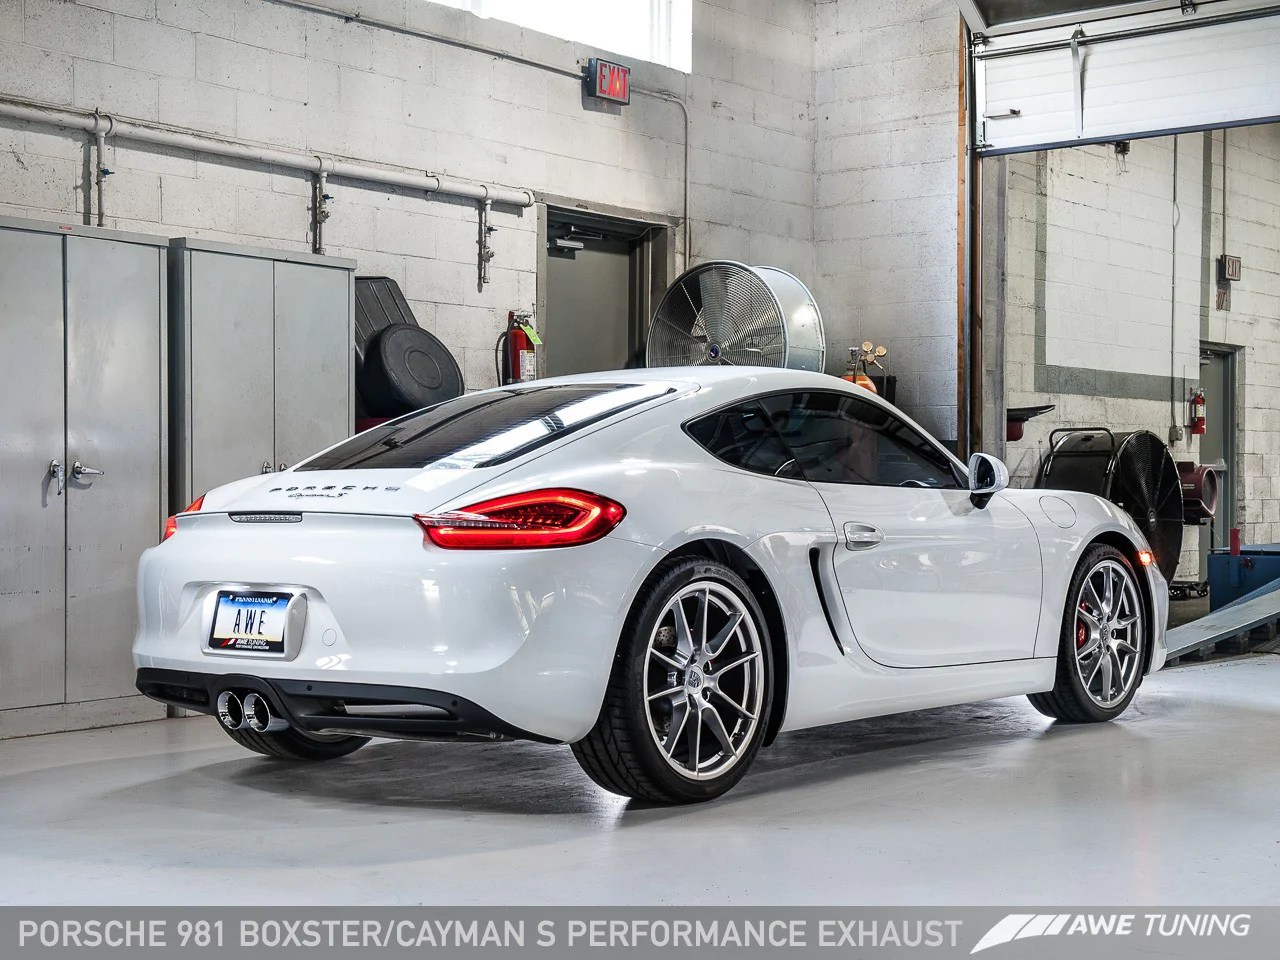 awe tuning exhaust system cayman boxster 981 flat 6 motorsports porsche  [ 1280 x 960 Pixel ]